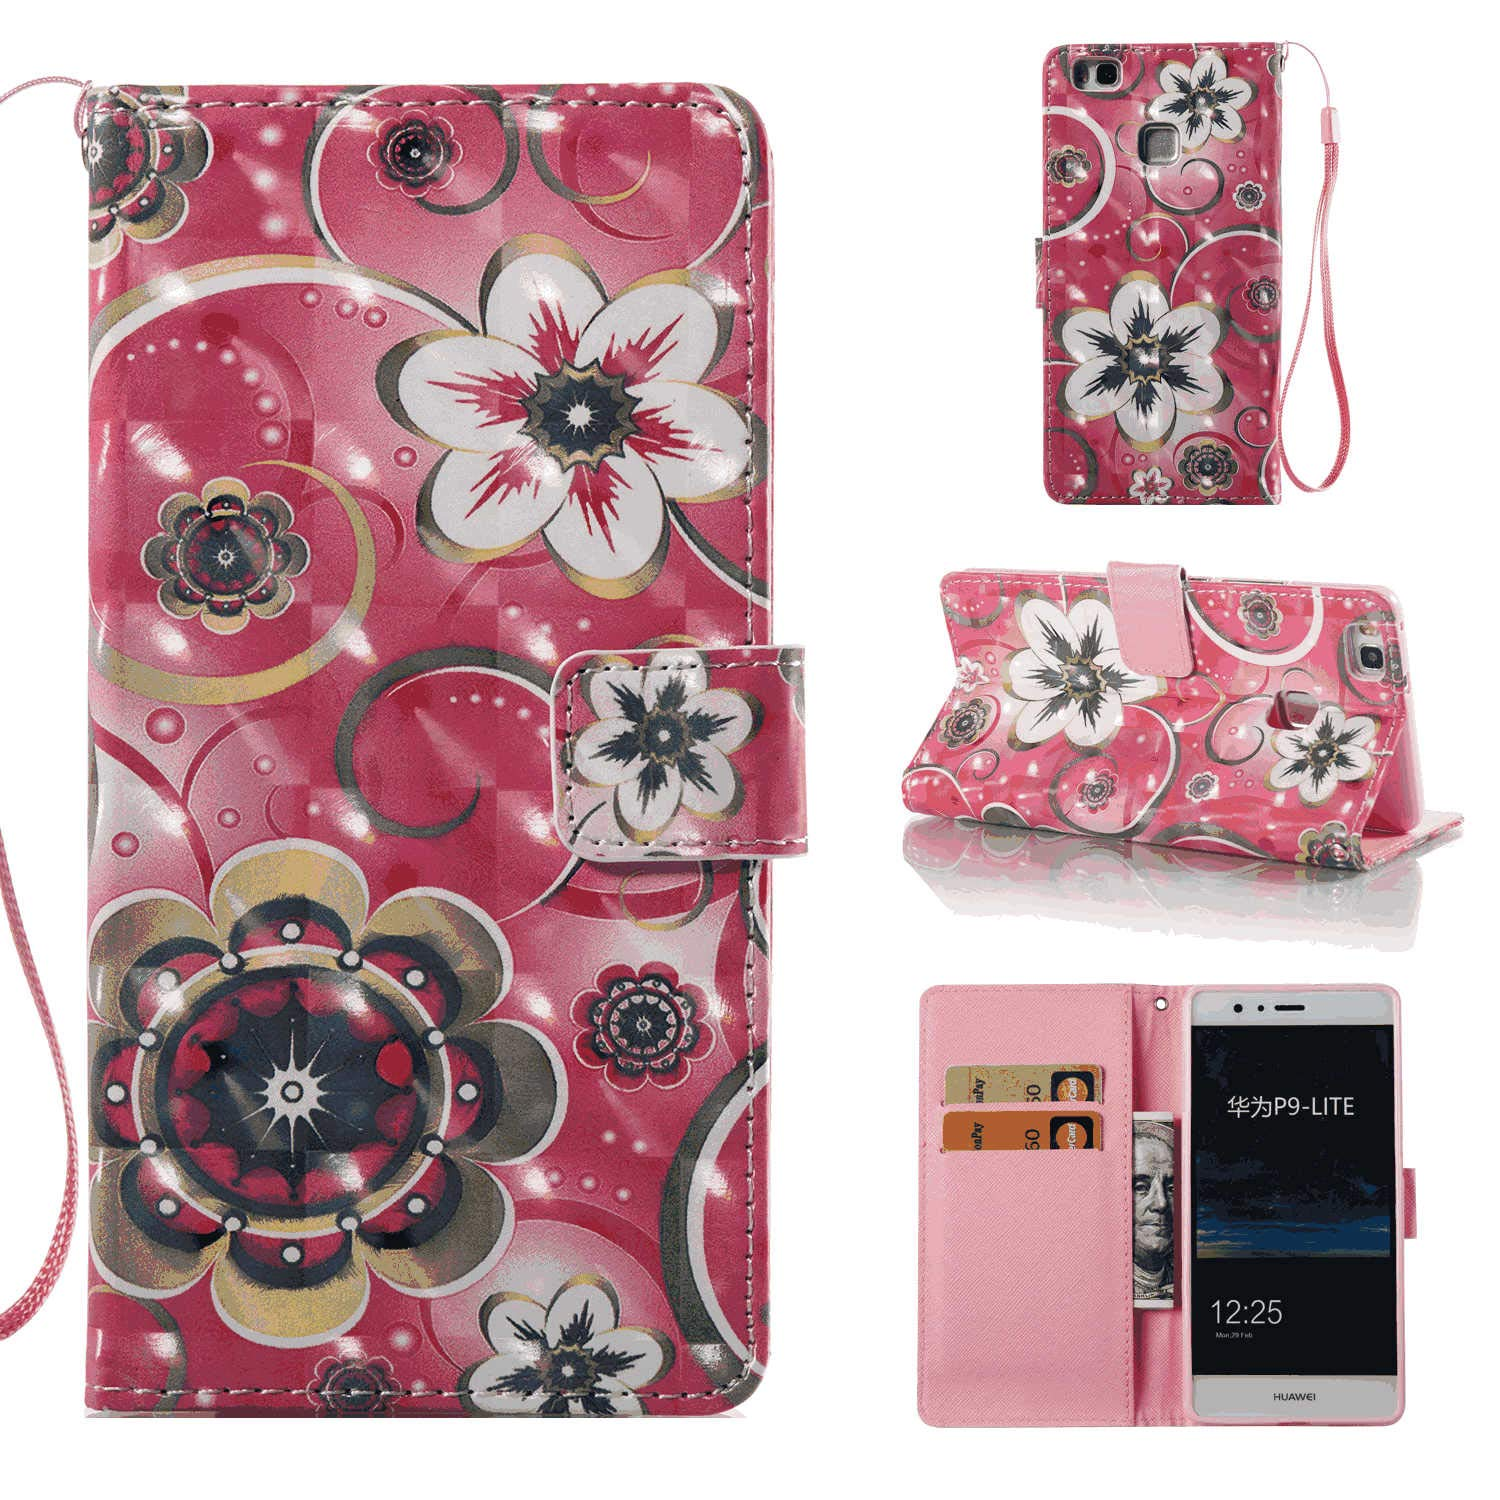 Cover for iPhone 7 Leather Kickstand Card Holders Extra-Shockproof Business Mobile Phone case with Free Waterproof-Bag iPhone 7 Flip Case